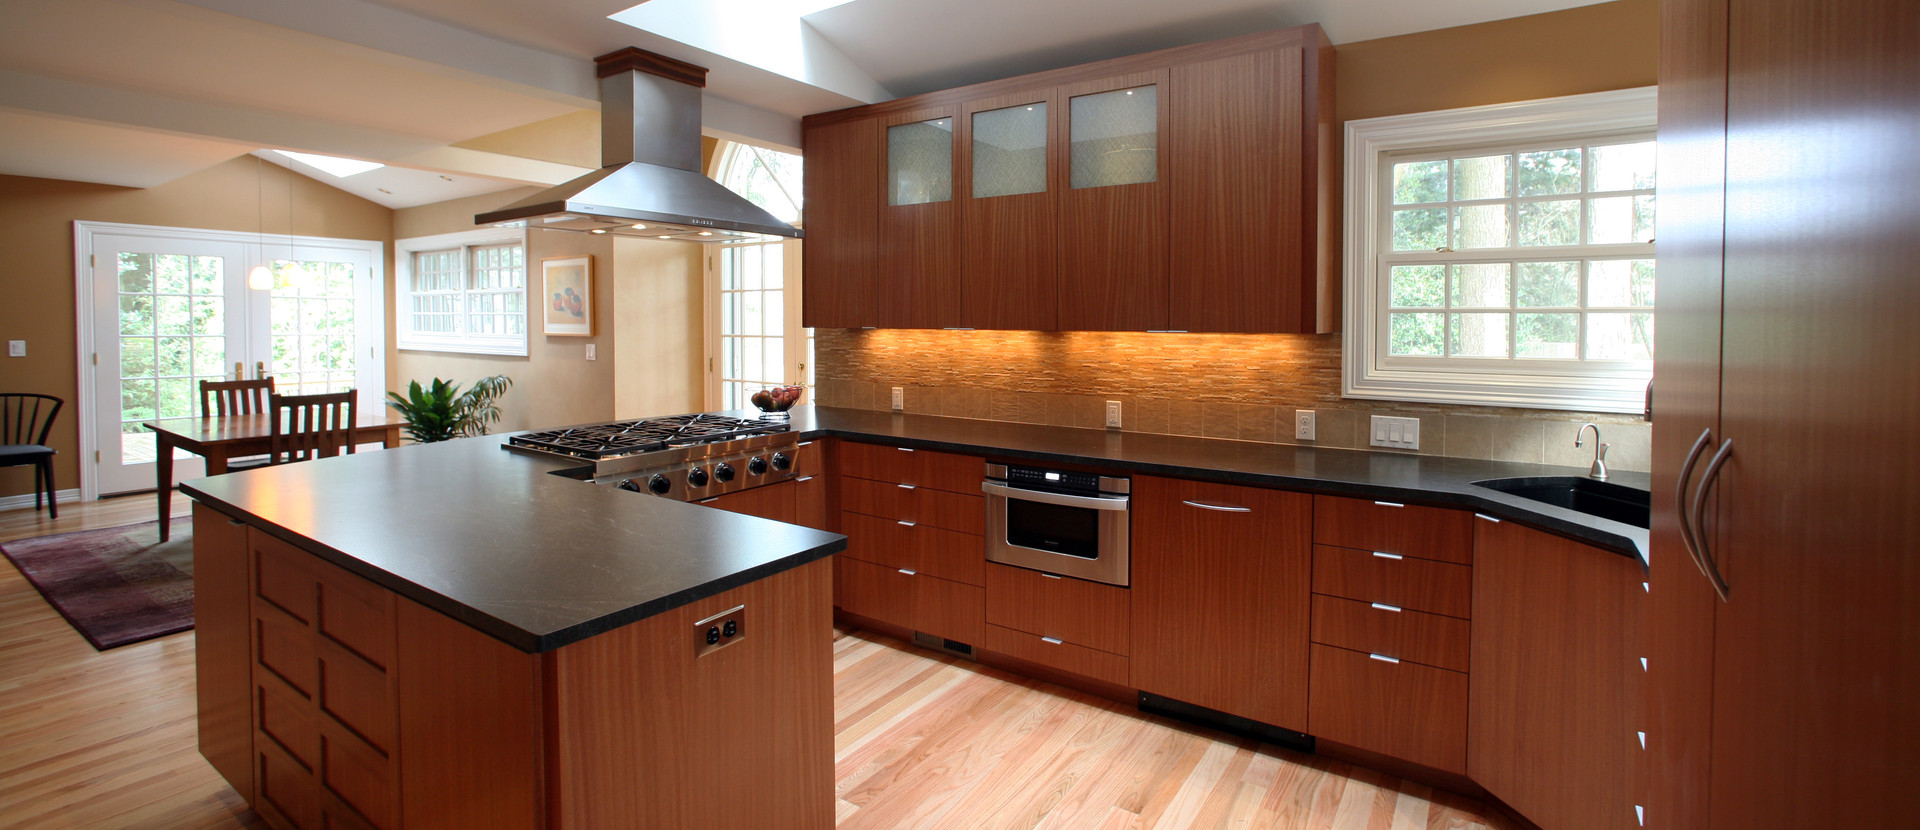 LEATHER FINISH COUNTER TOPS